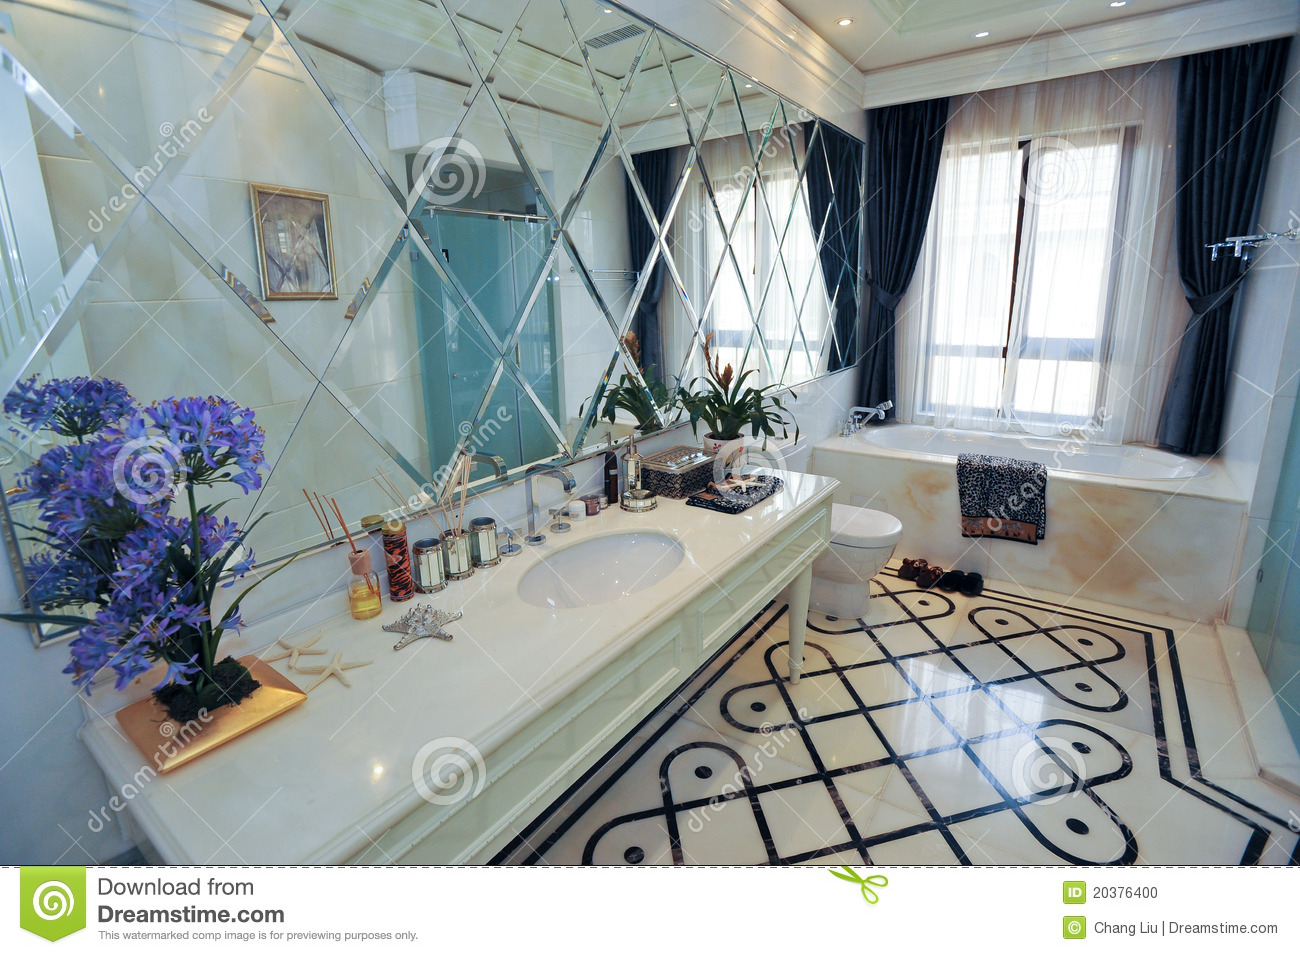 Mirrior branco e azul de bathroom.marble bathtub.blue flower.modern  #39456F 1300 955